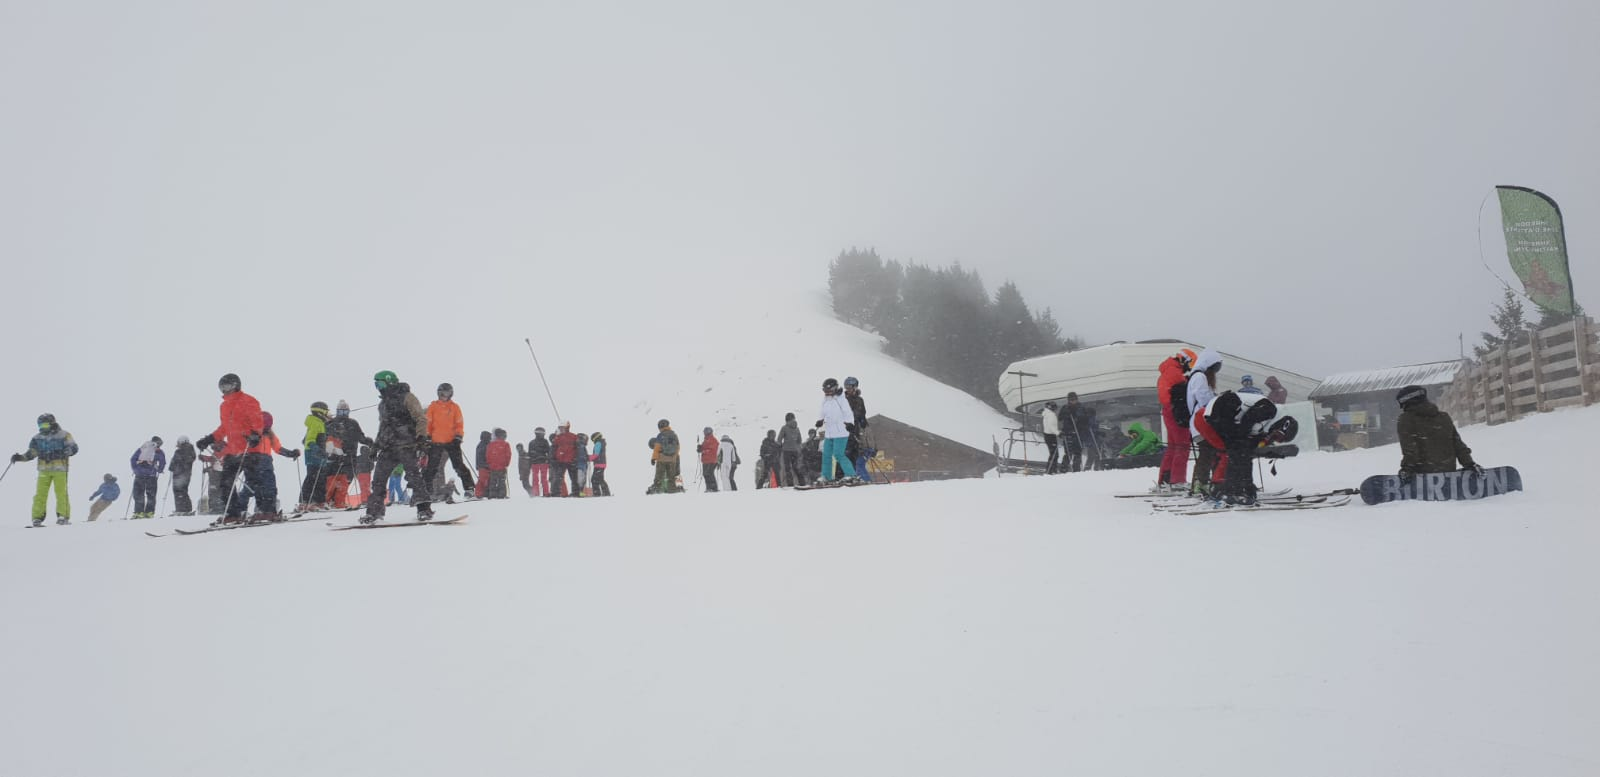 Skiers blocking the piste